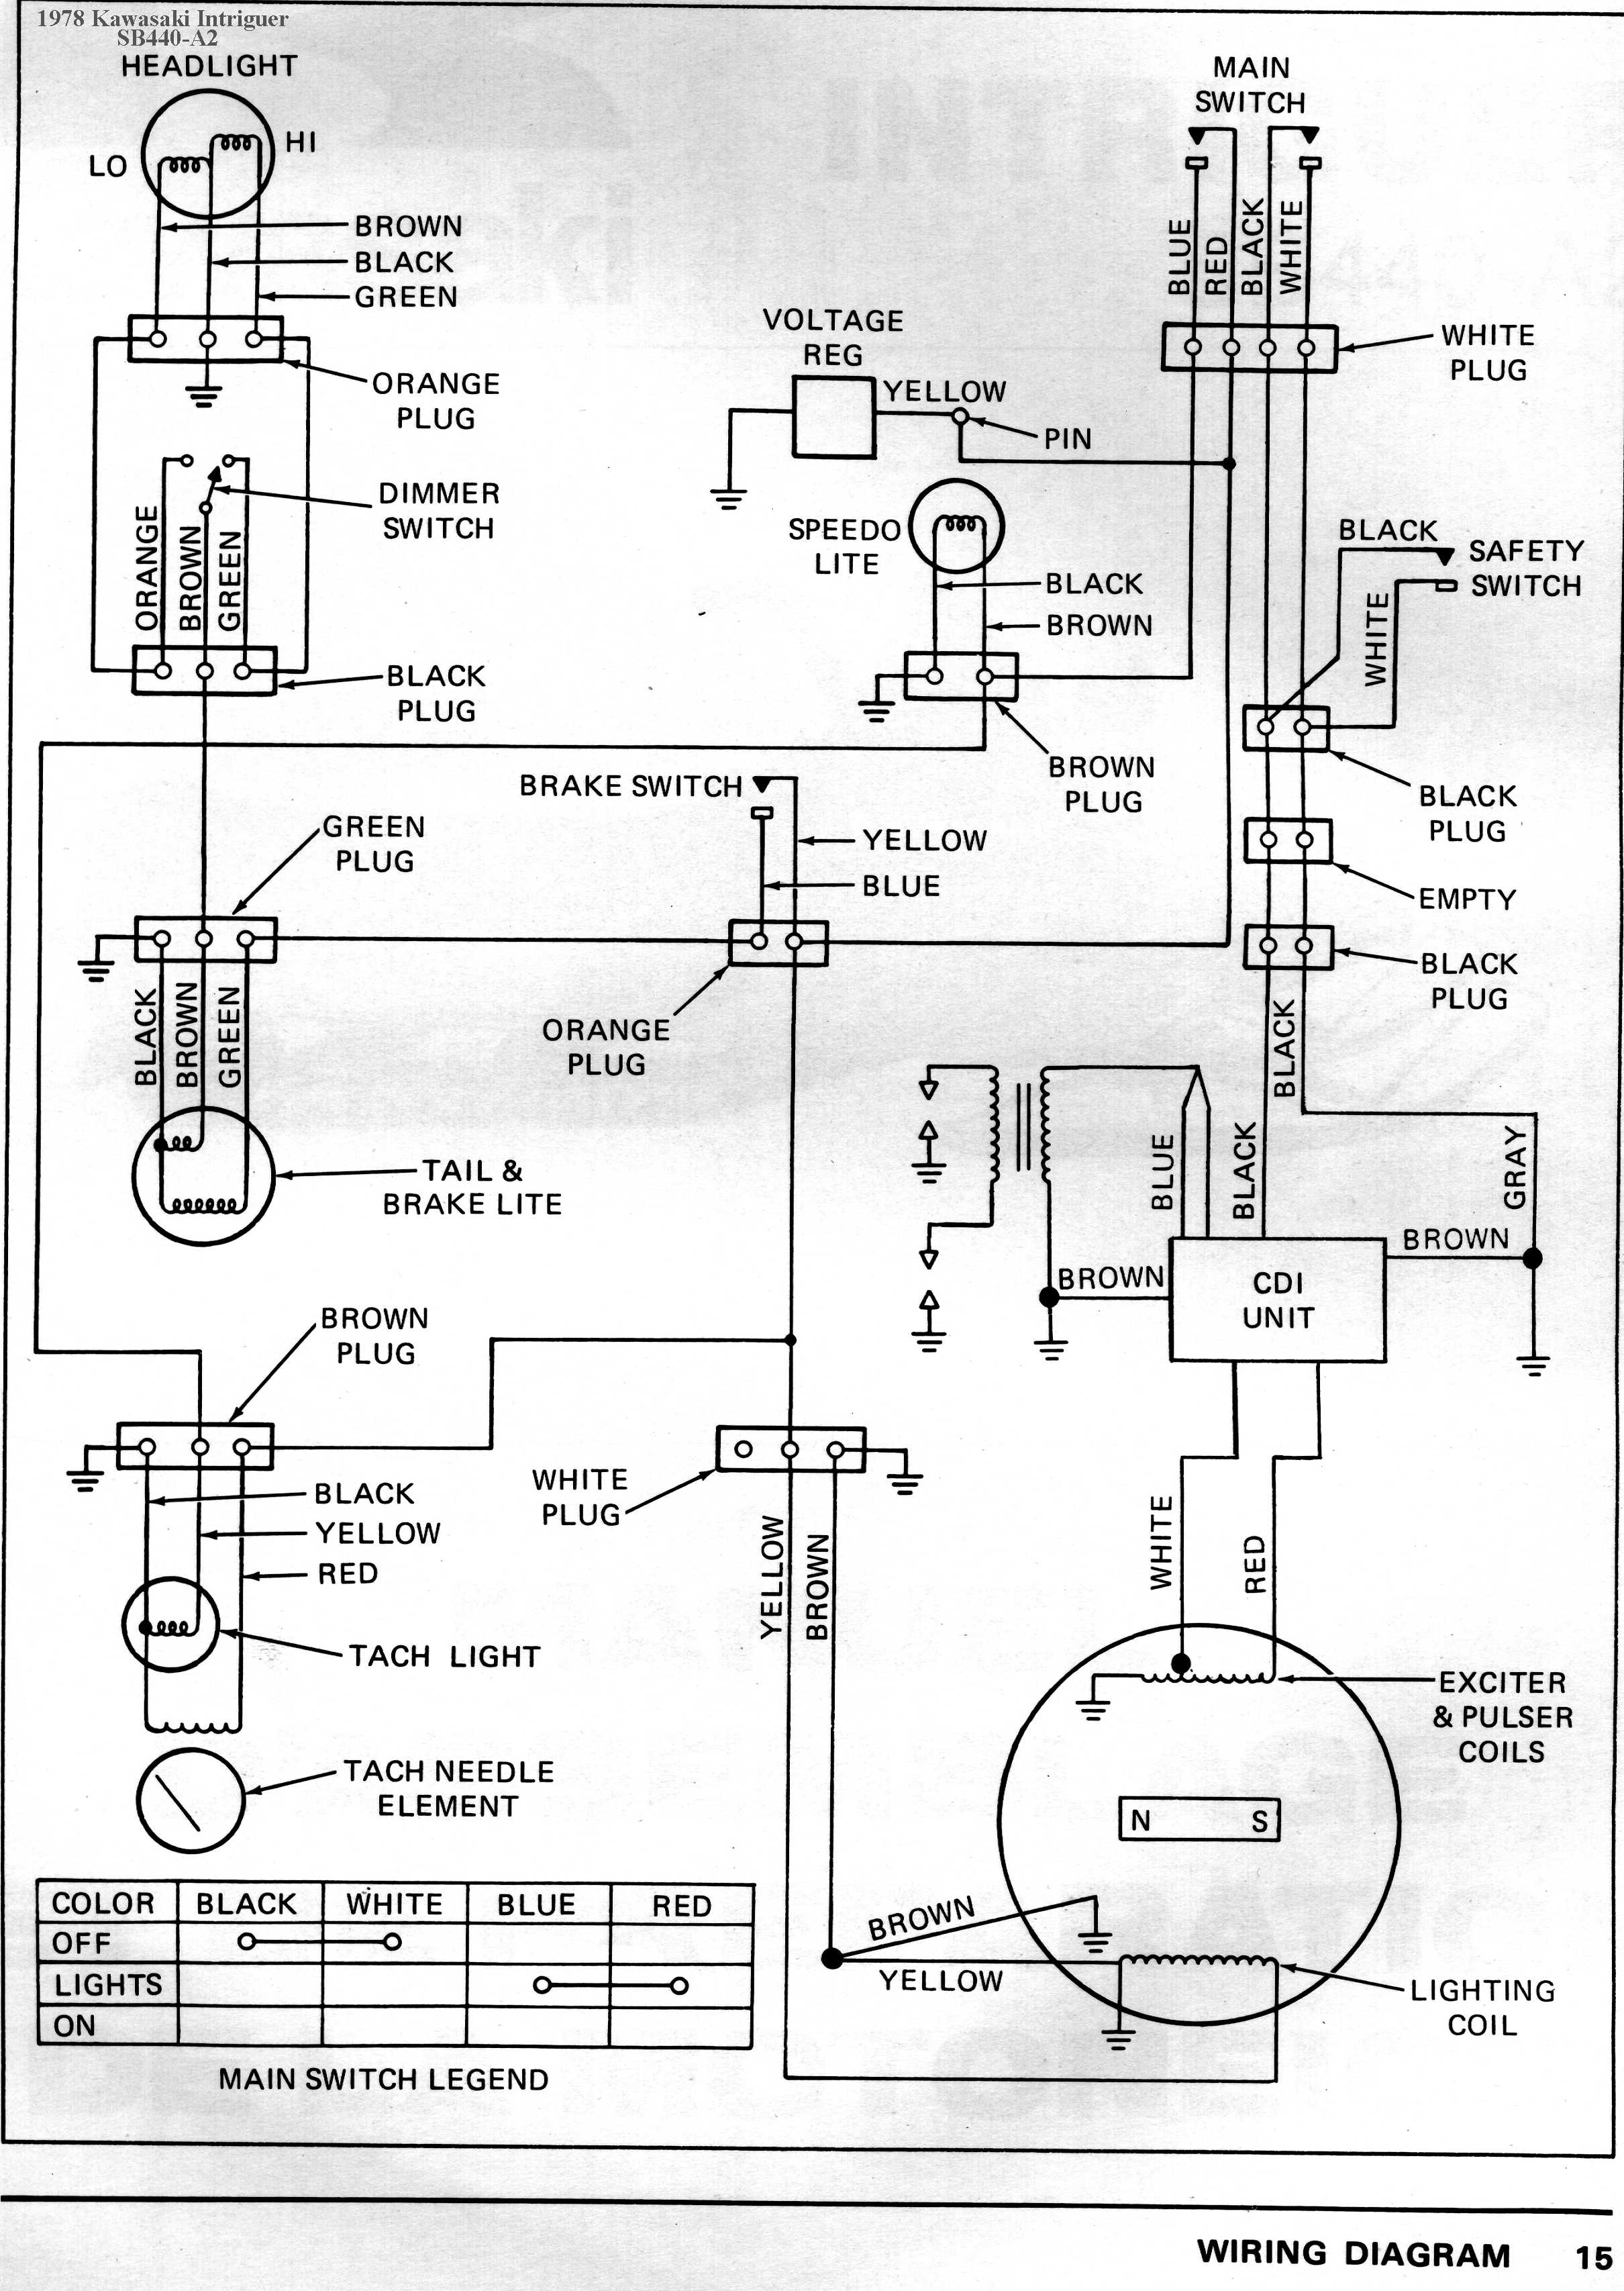 1980 Moto Ski Wiring Diagram johnson outboard wiring diagram ... Kz Wiring Diagram on kz650 wiring diagram, z400 wiring diagram, klr650 wiring diagram, ninja 250r wiring diagram, z1000 wiring diagram, fj1100 wiring diagram, kz1000 wiring diagram, kz440 wiring diagram, zx7r wiring diagram, gs 750 wiring diagram, kz750 wiring diagram, kz400 wiring diagram, xs650 wiring diagram, honda wiring diagram, zl1000 wiring diagram, ex500 wiring diagram, ex250 wiring diagram, vulcan 1500 wiring diagram, kz200 wiring diagram, ke175 wiring diagram,